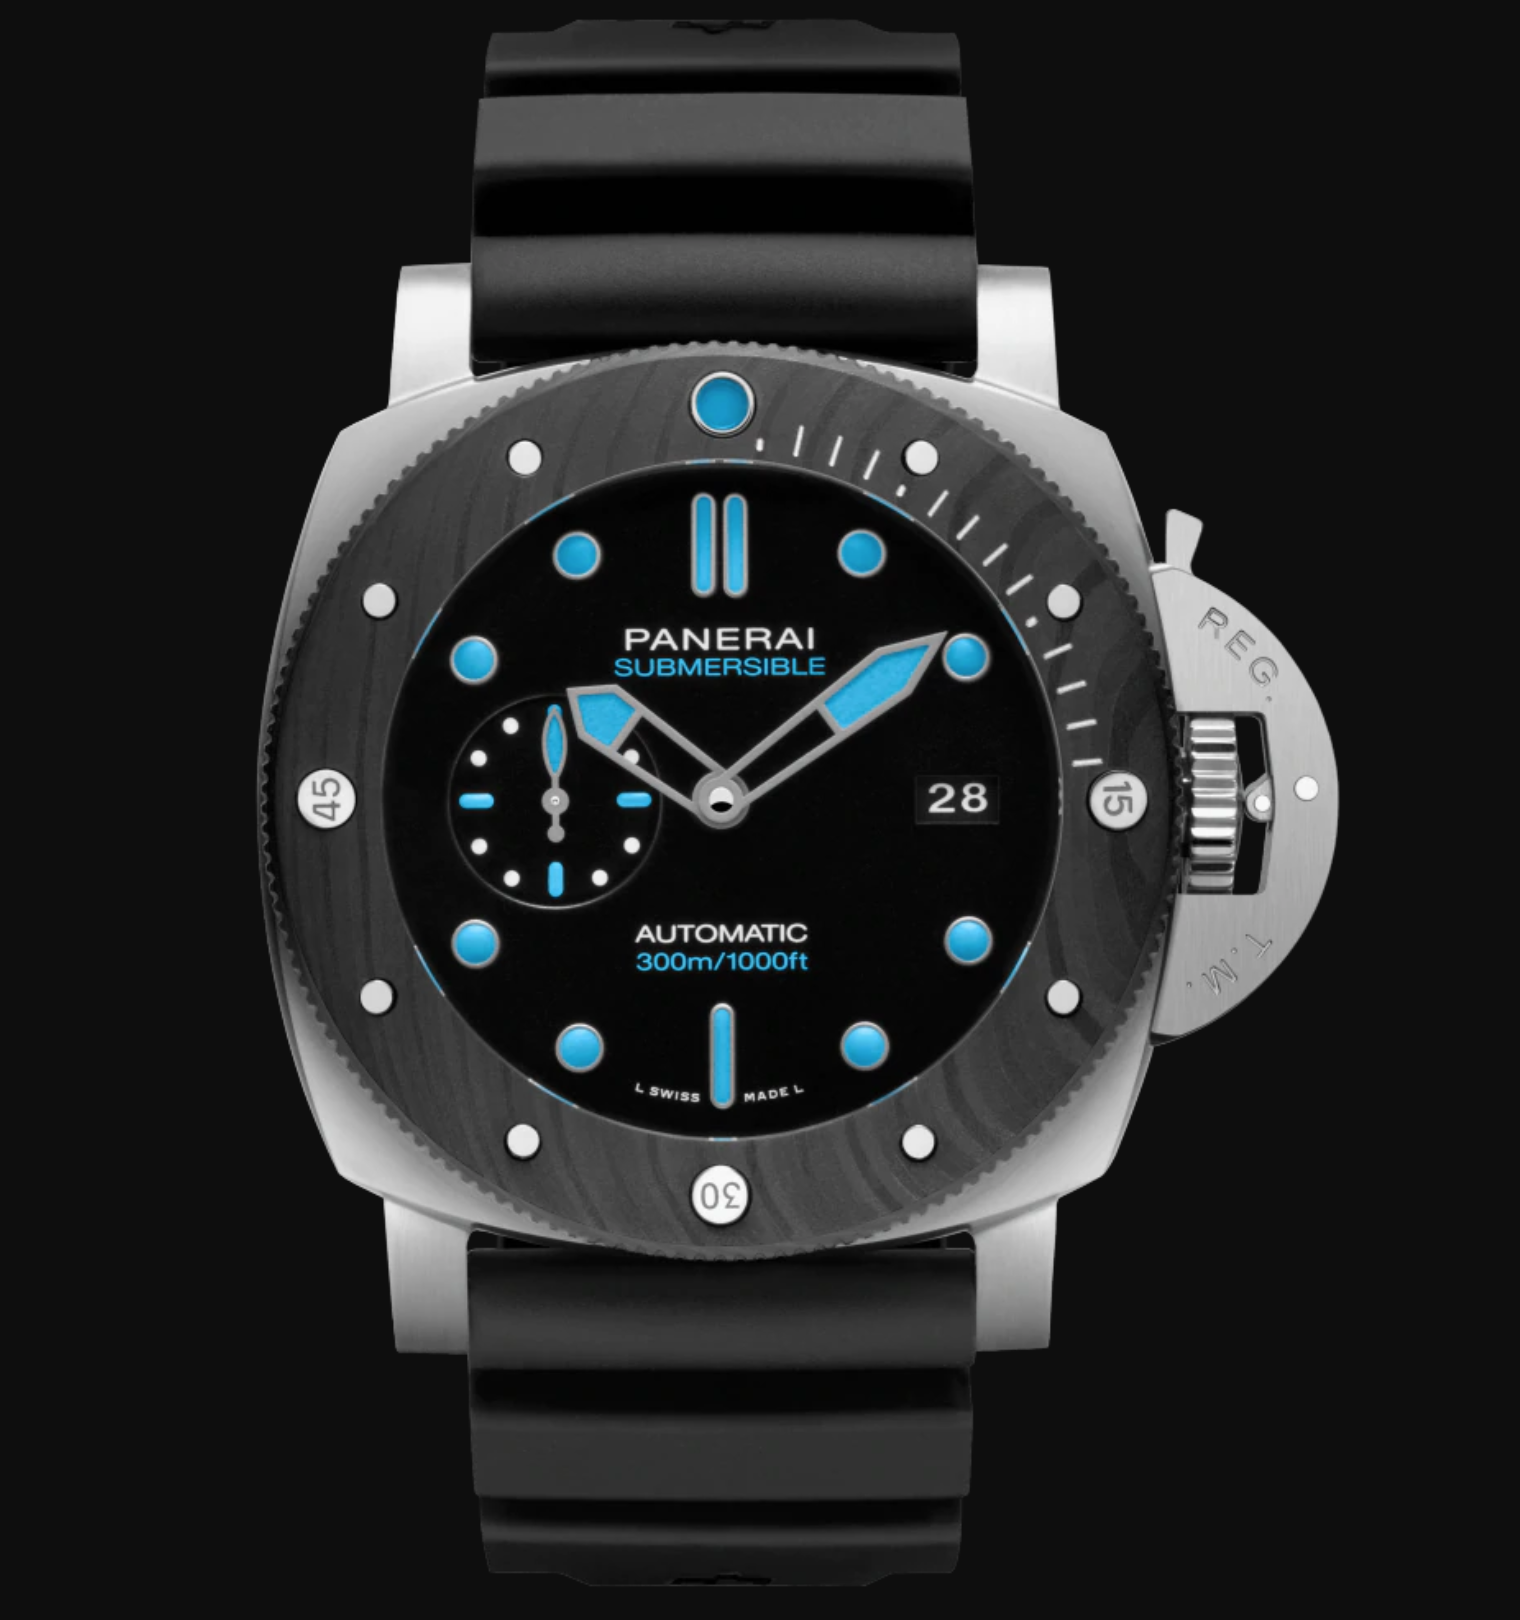 Panerai Submersible BMG-TECH 47mm